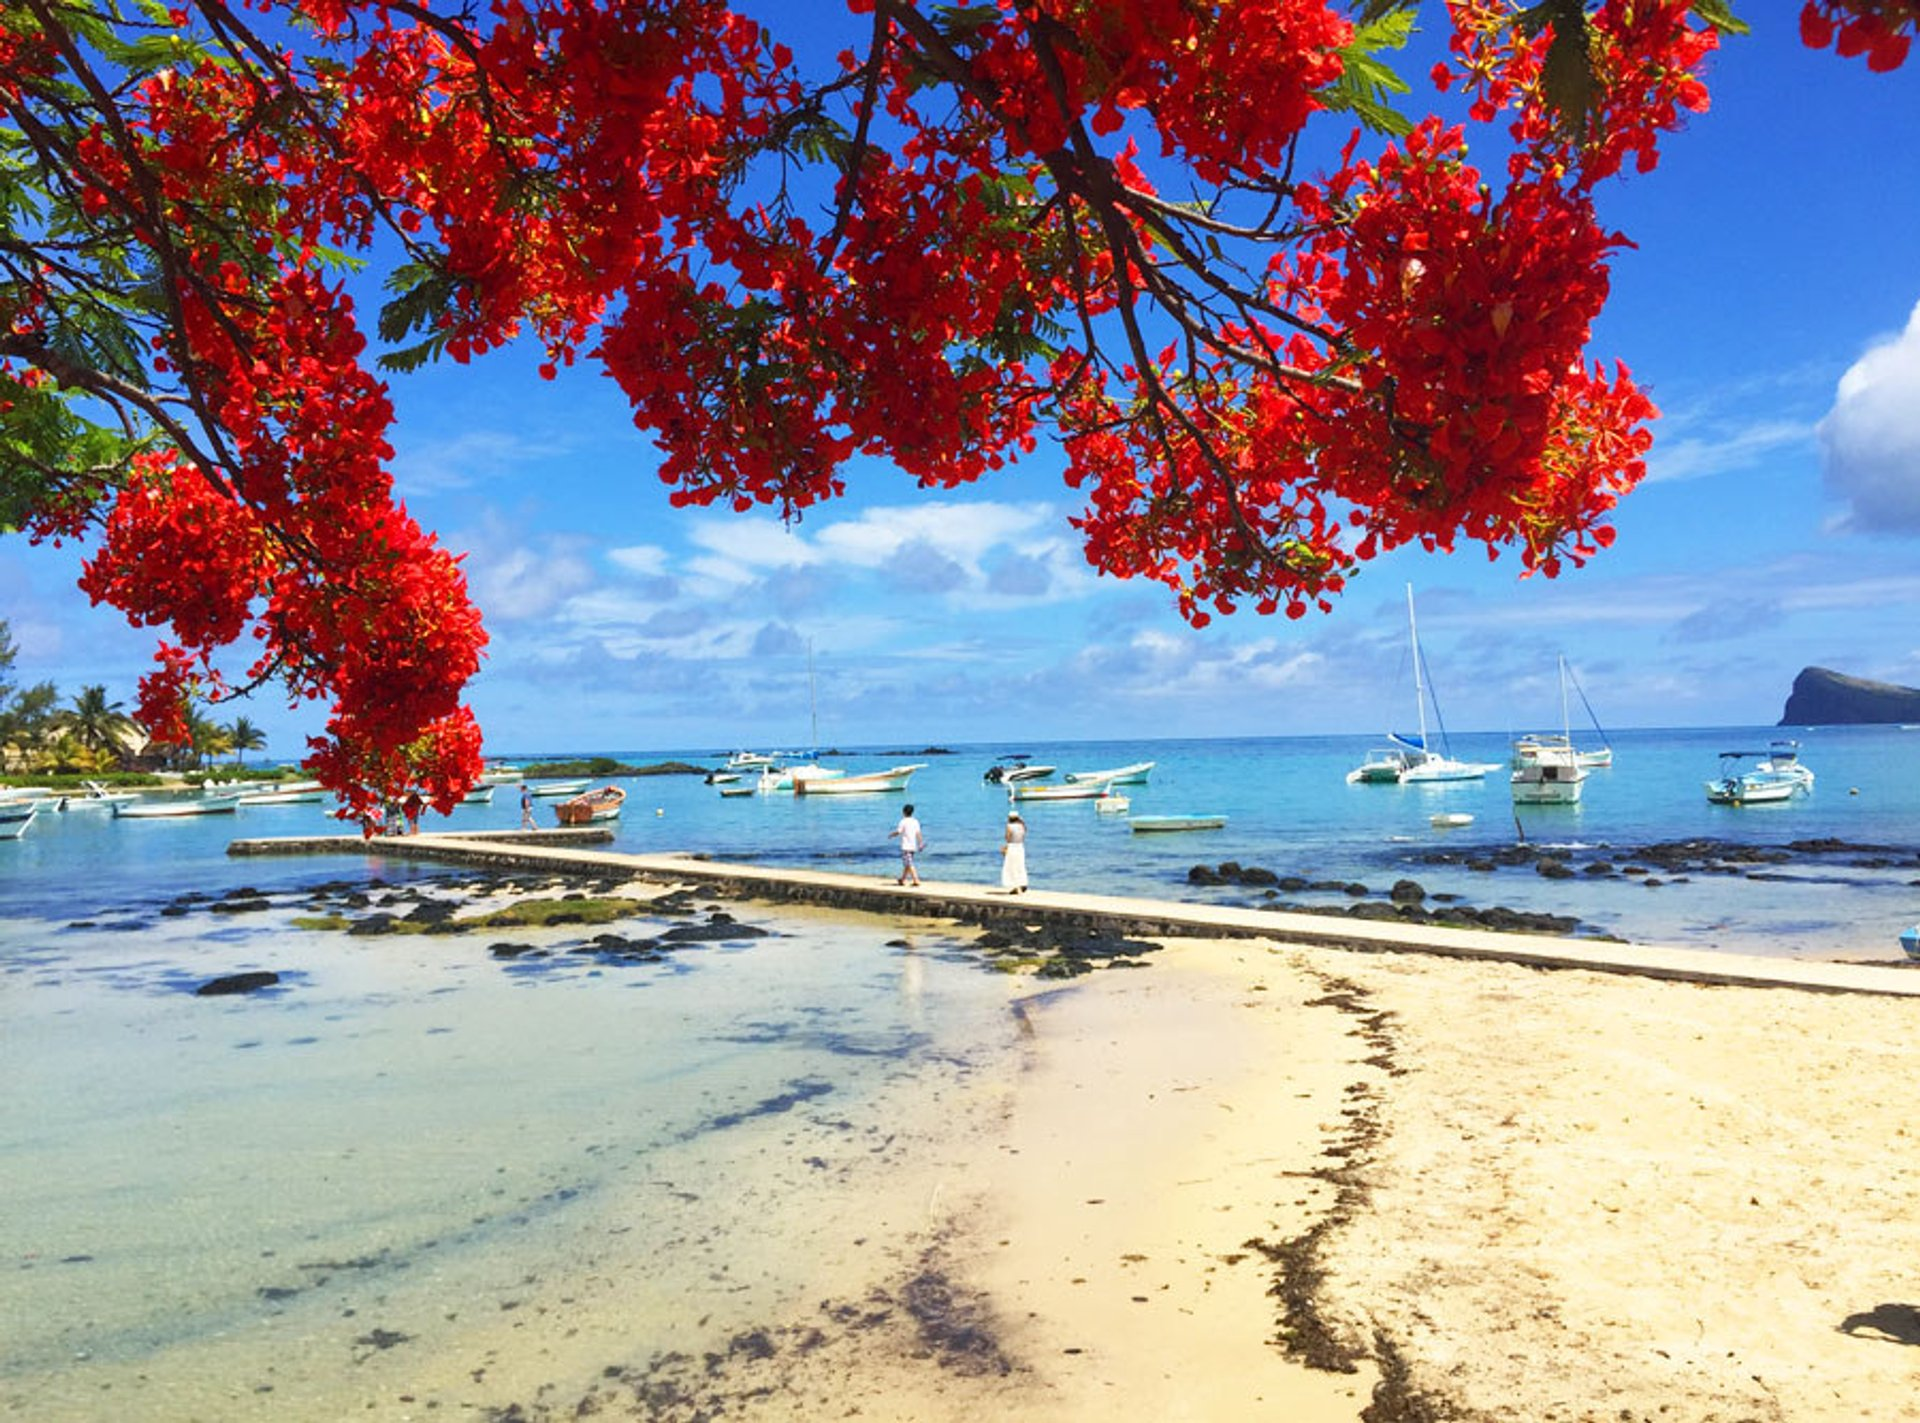 Flamboyant Tree Blossom in Mauritius 2019 - Best Time